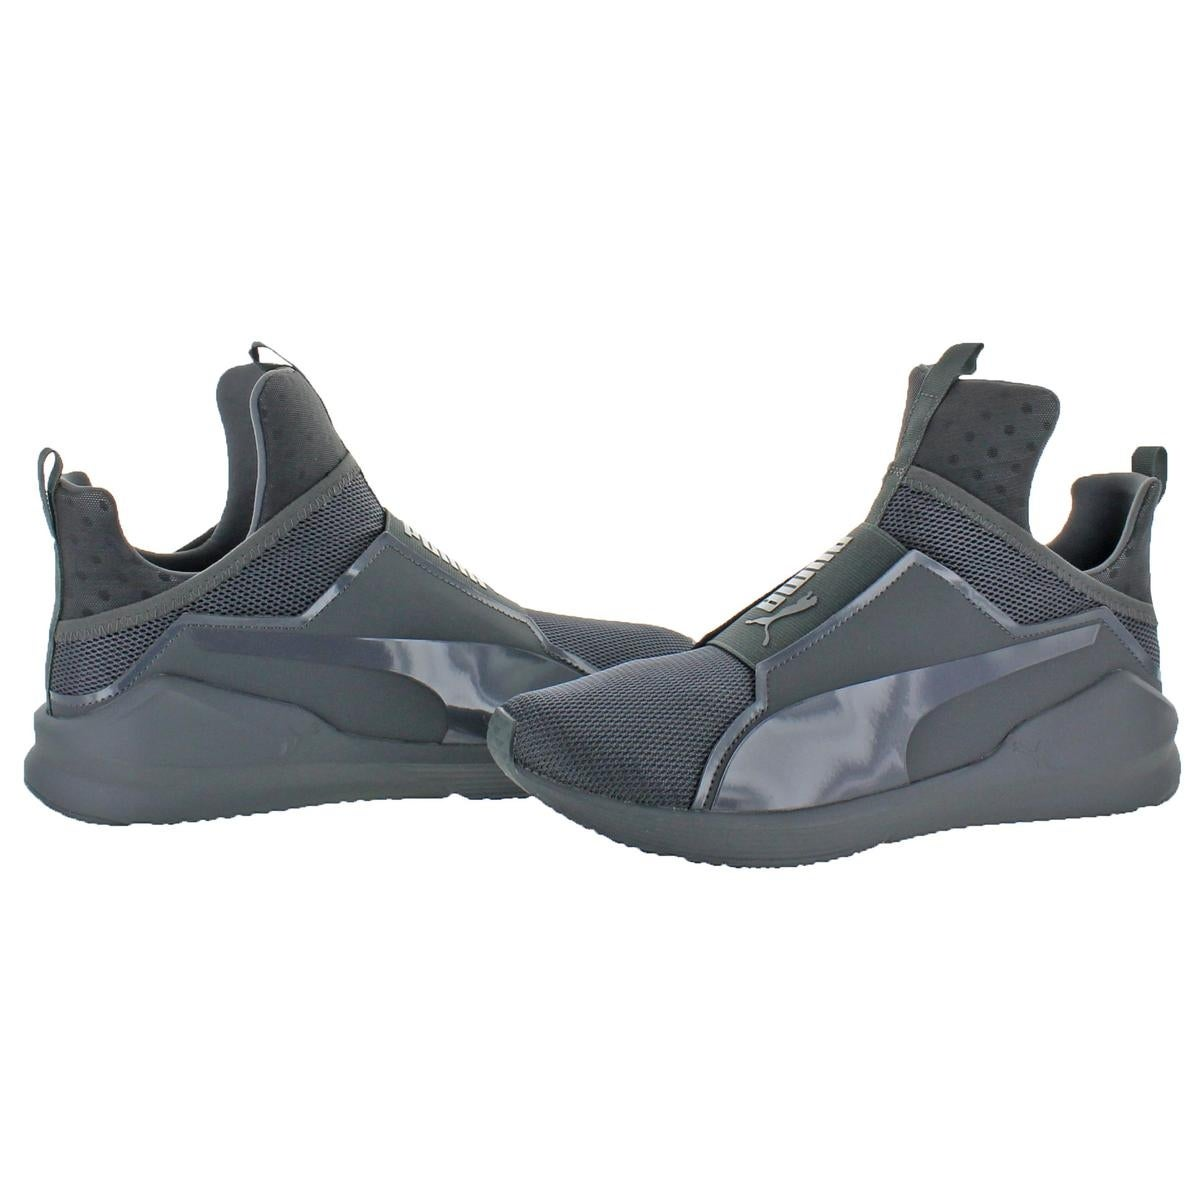 216e2571e76 Shop Puma Mens Fierce Core Mono Trainers Lifestyle Athleisure - Free  Shipping Today - Overstock - 23446784